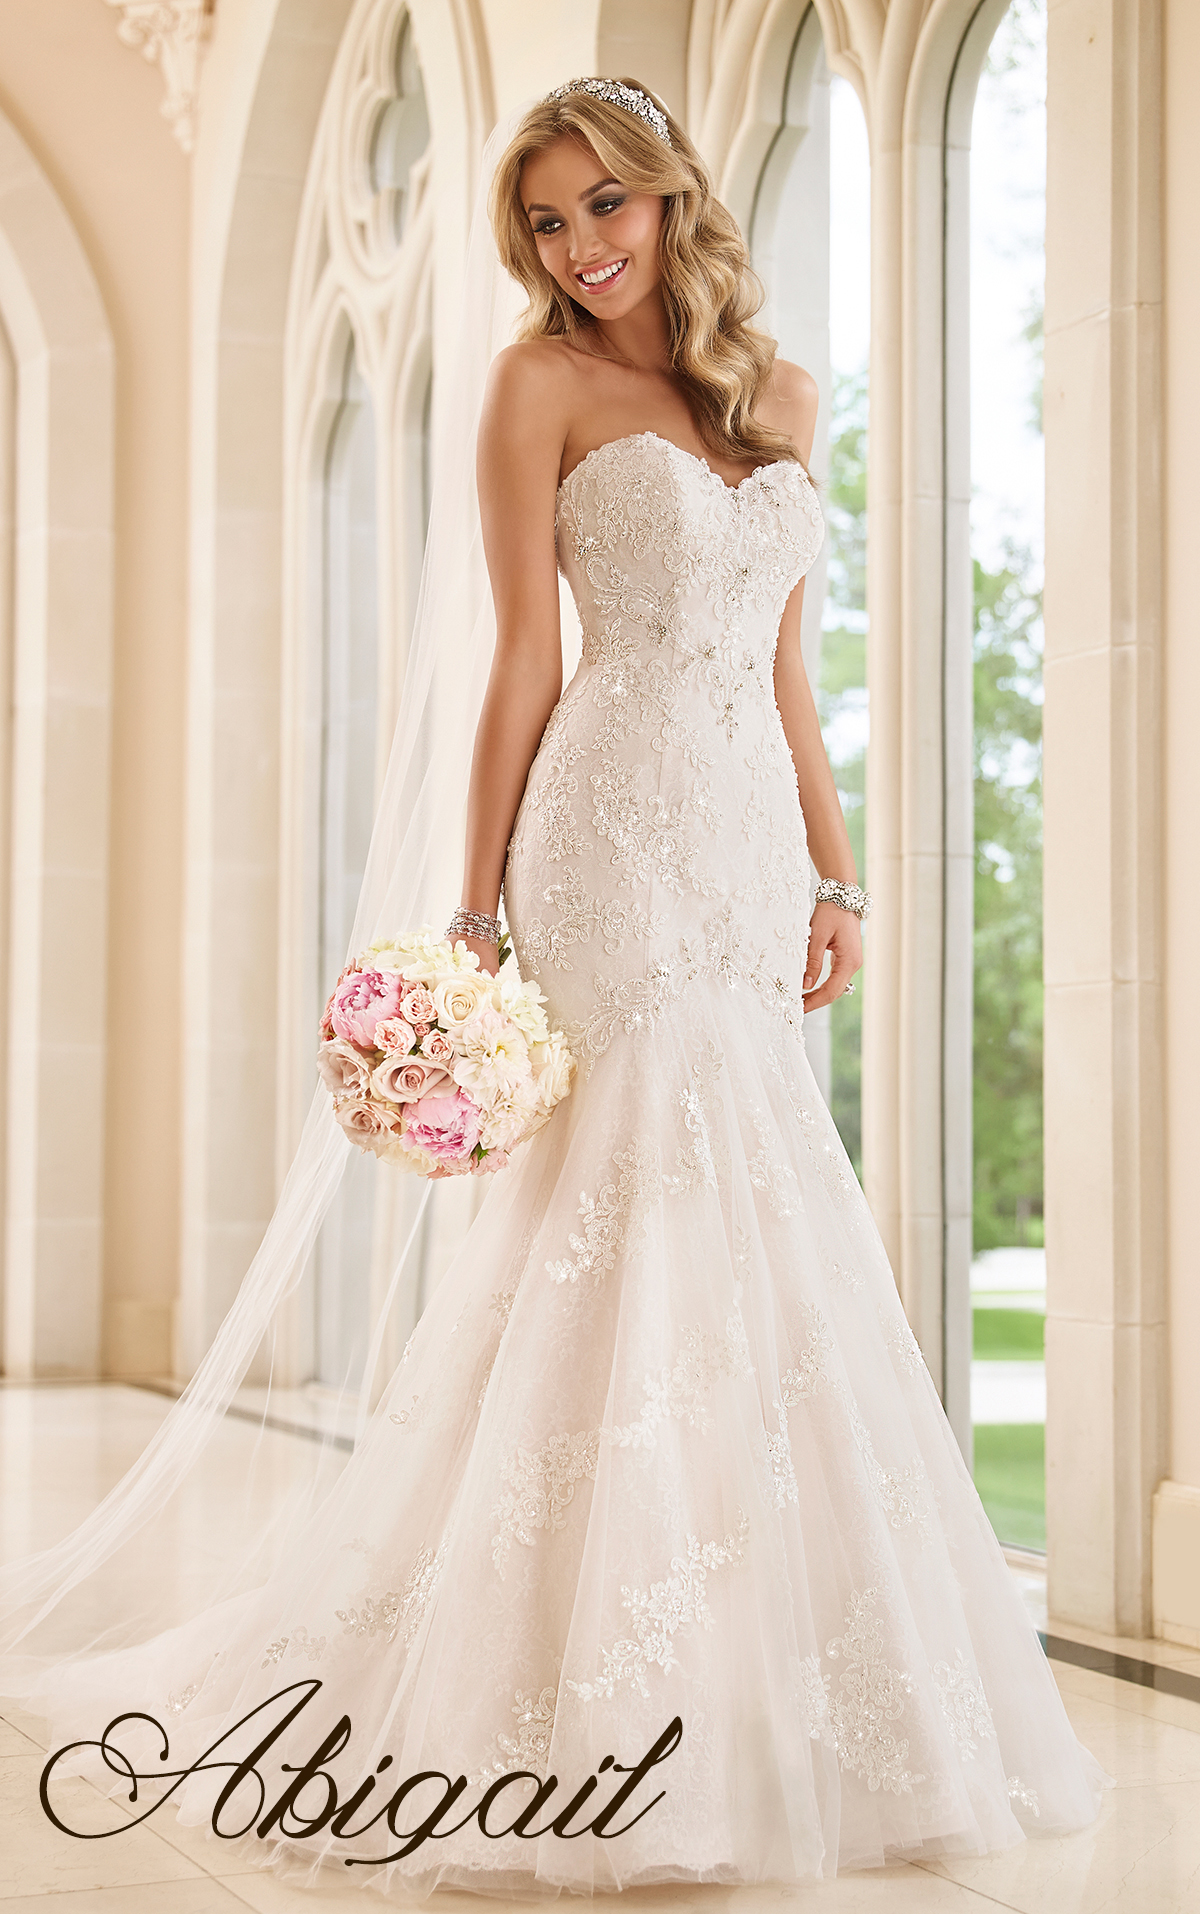 77c970bbcd Abigail – This fit to flare gown offers exquisite elegance with the  intricate beading and lace underlay. The fit on this gown is phenomenal and  the ...